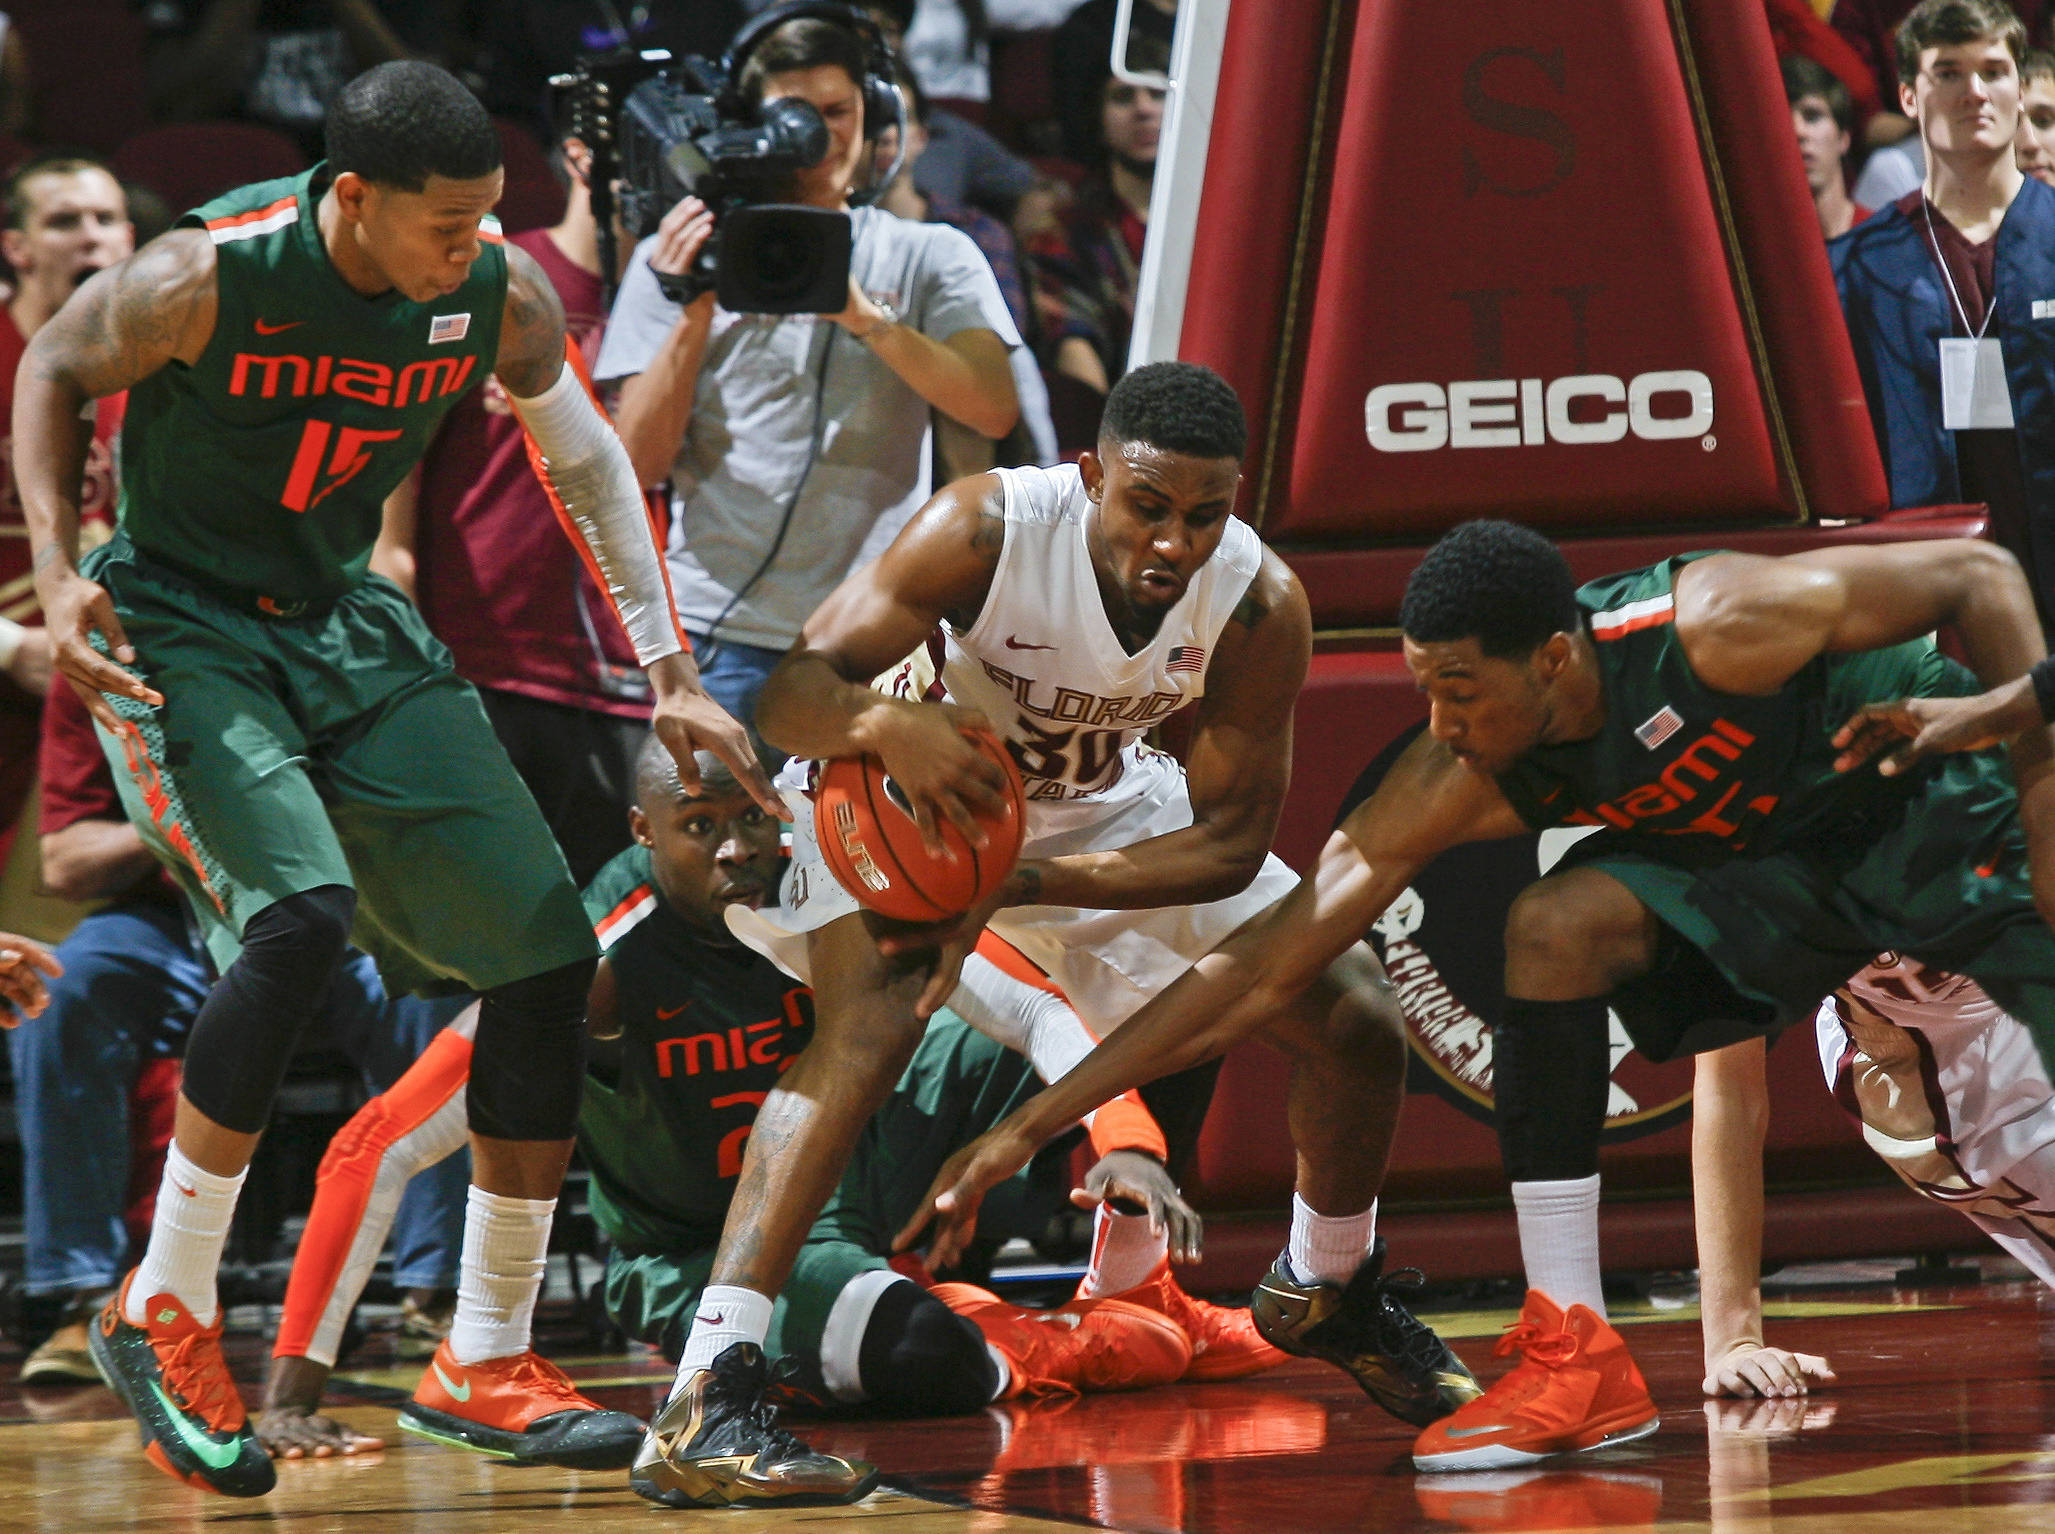 Feb 10, 2014; Tallahassee, FL, USA; Seminoles guard Ian Miller (30) is surrounded by Miami Hurricanes guard Rion Brown (15) and center Tonye Jekiri (in back) and guard Garrius Adams (25) in the second half. Phil Sears-USA TODAY Sports